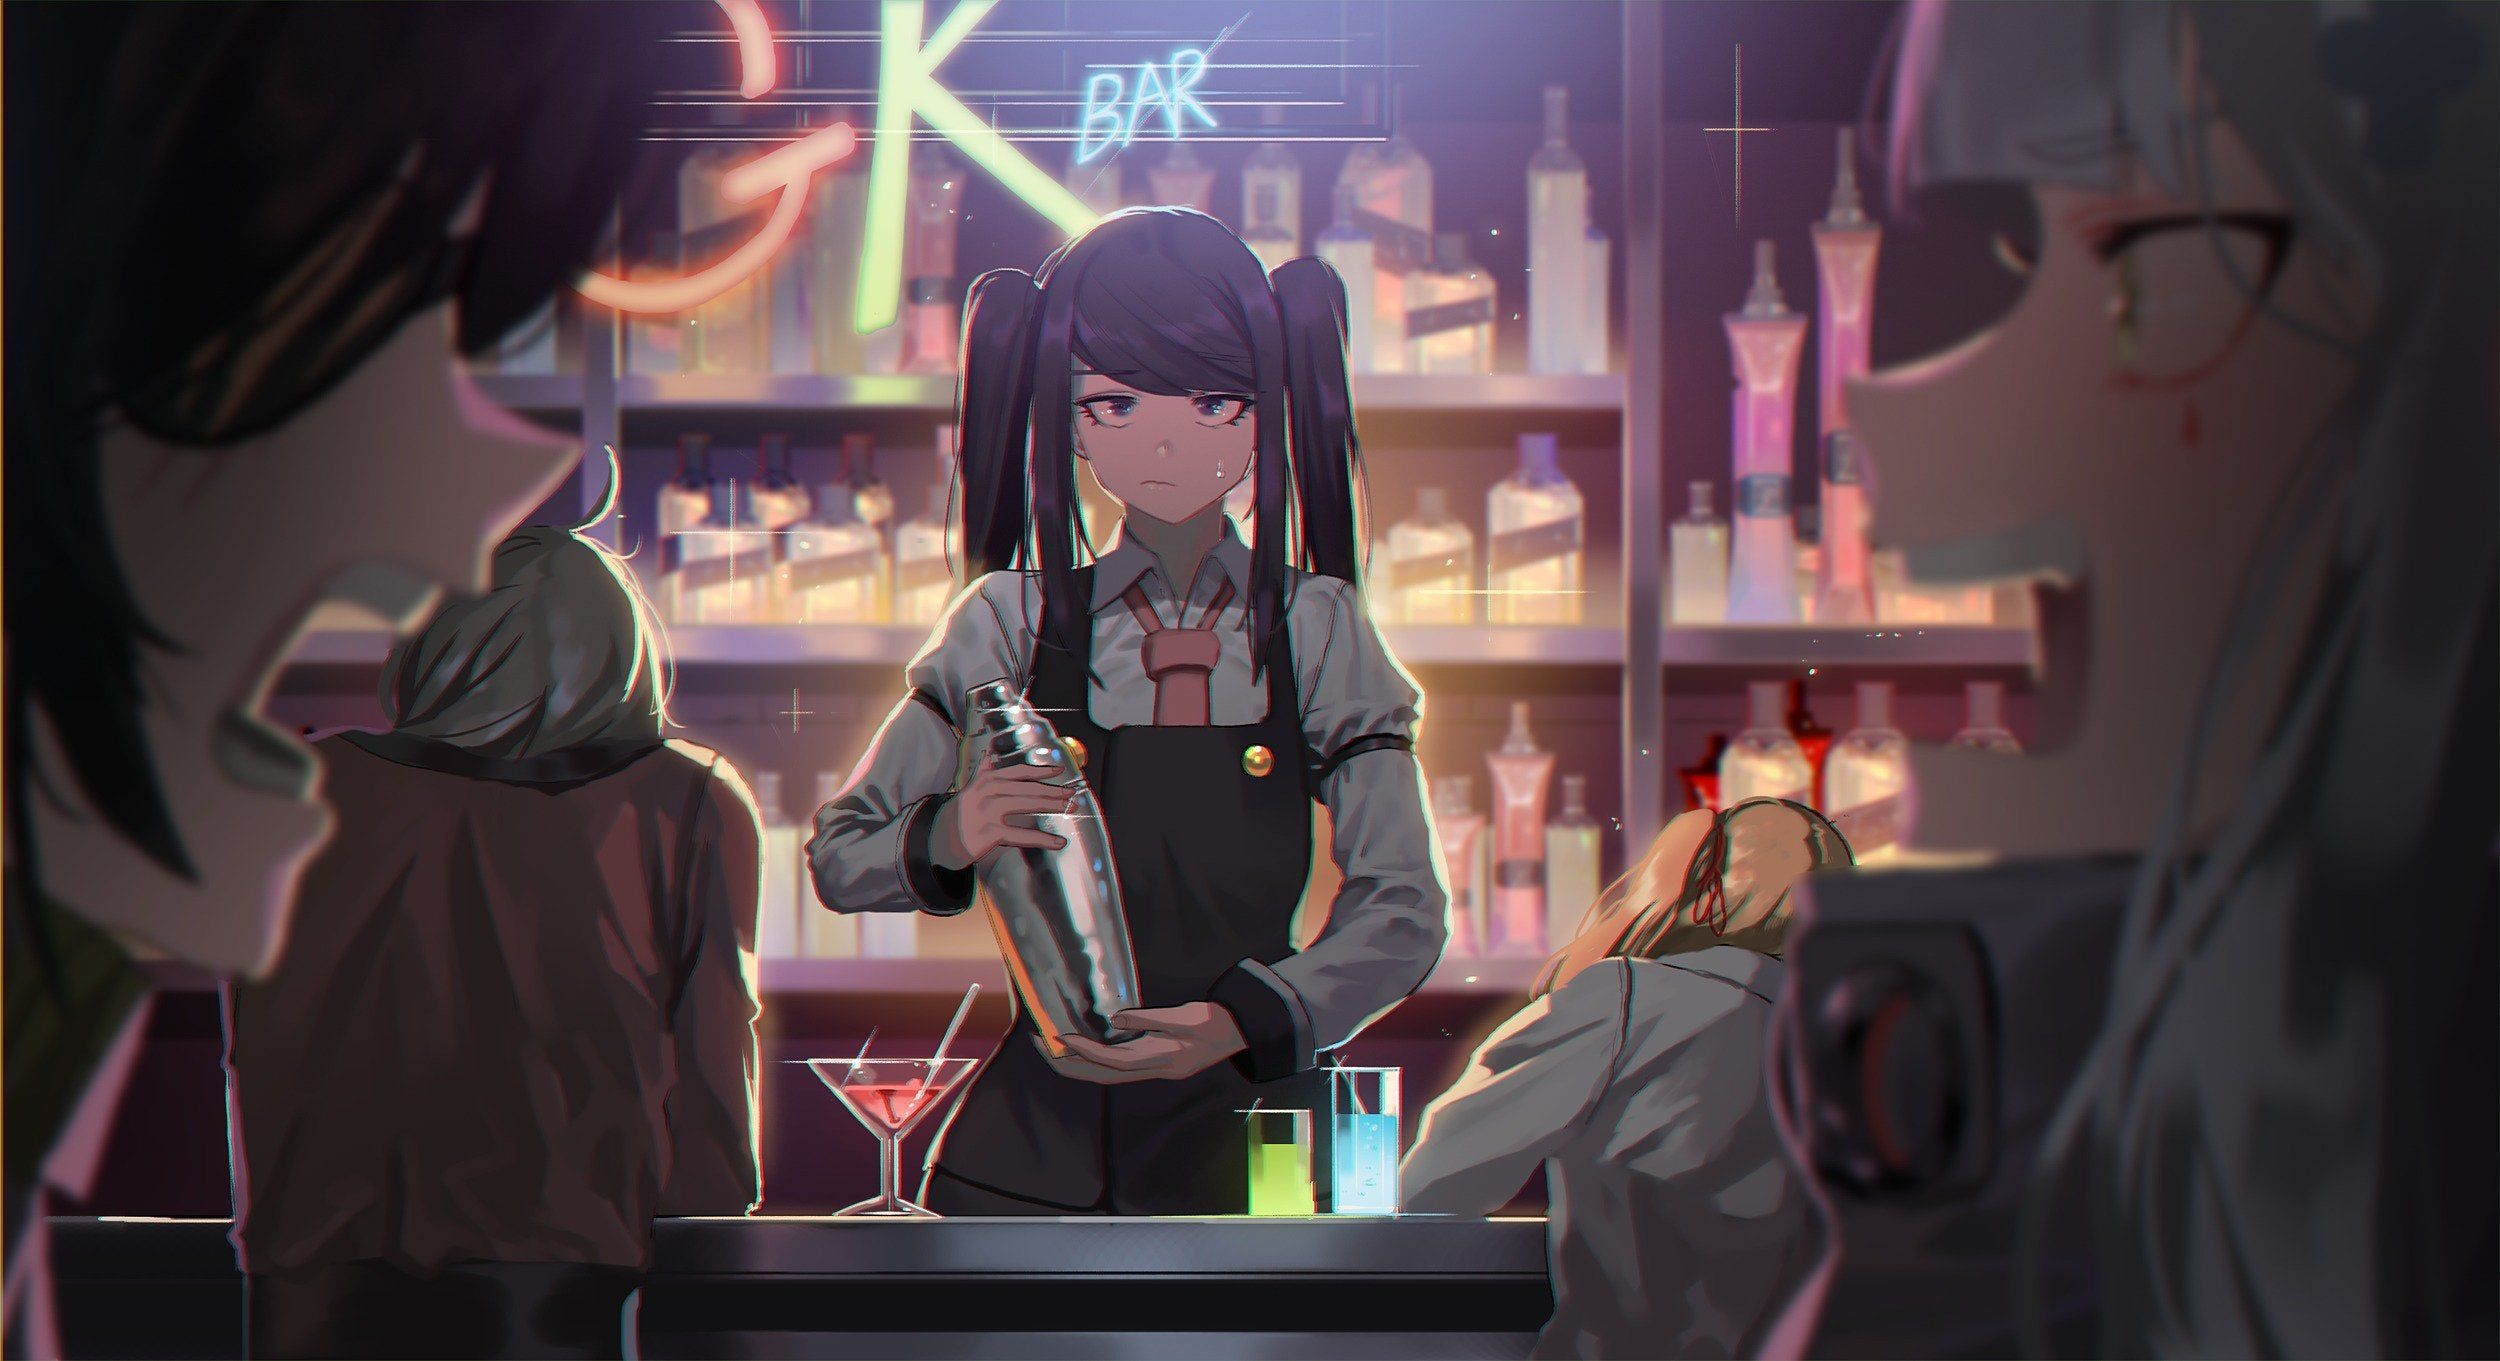 Time to Mix Drinks and Change Lives girlsfrontline